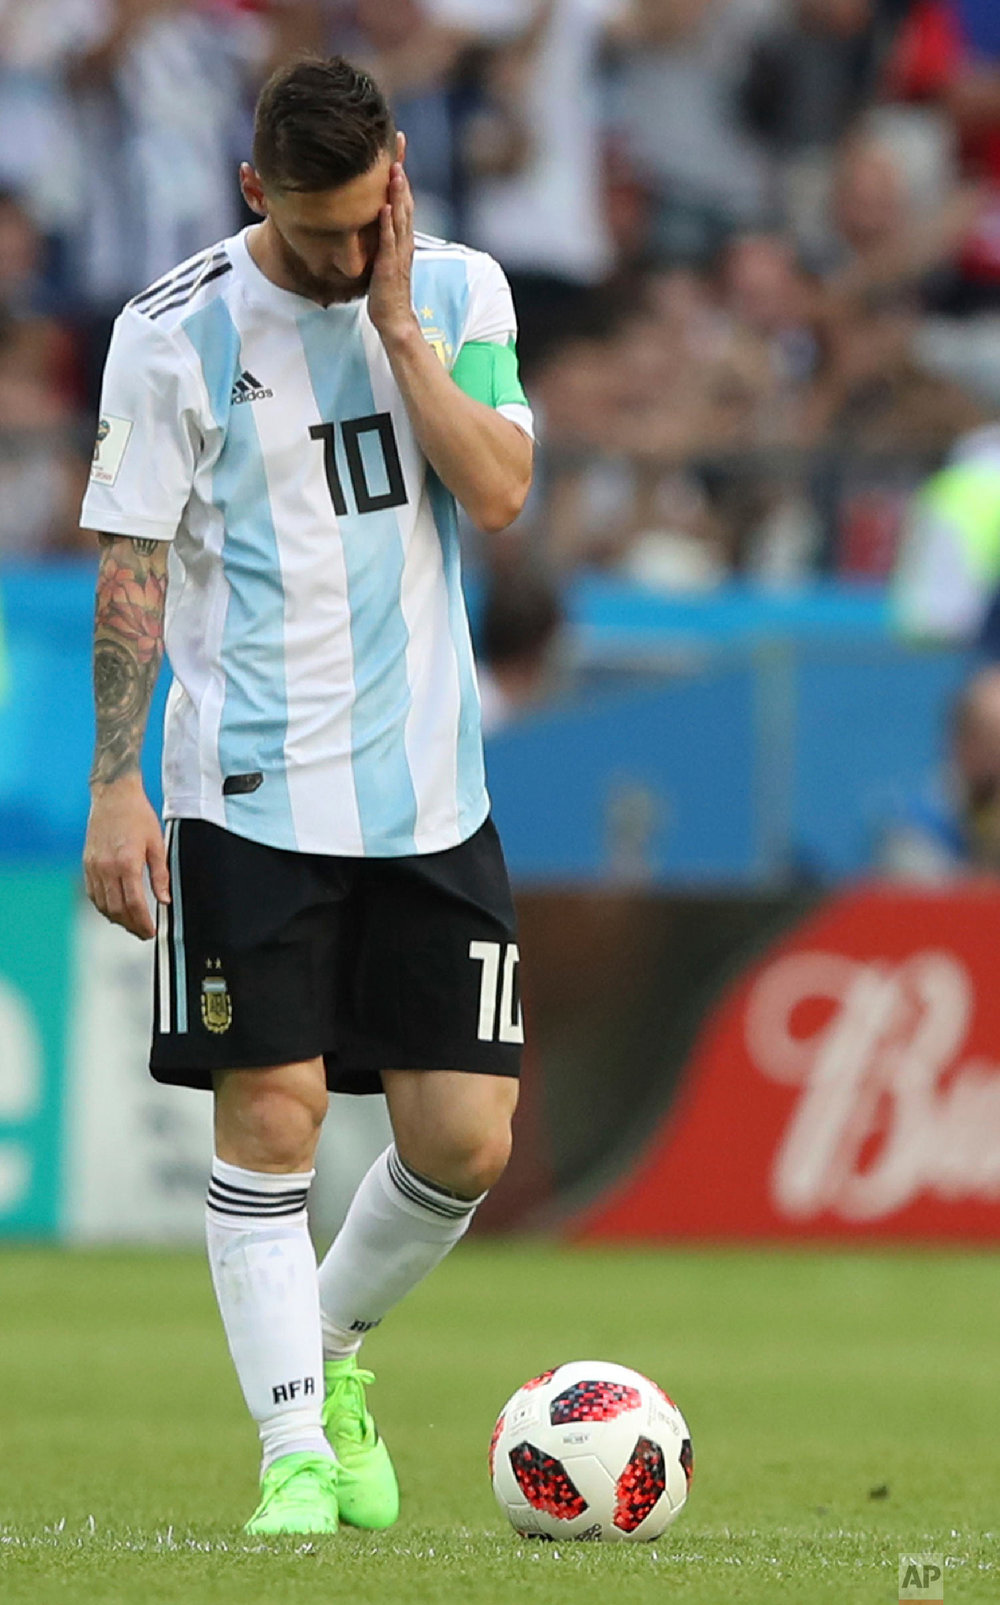 Argentina's Lionel Messi reacts after France takes the lead during the round of 16 match between France and Argentina, at the 2018 soccer World Cup at the Kazan Arena in Kazan, Russia on June 30, 2018. (AP Photo/Thanassis Stavrakis)